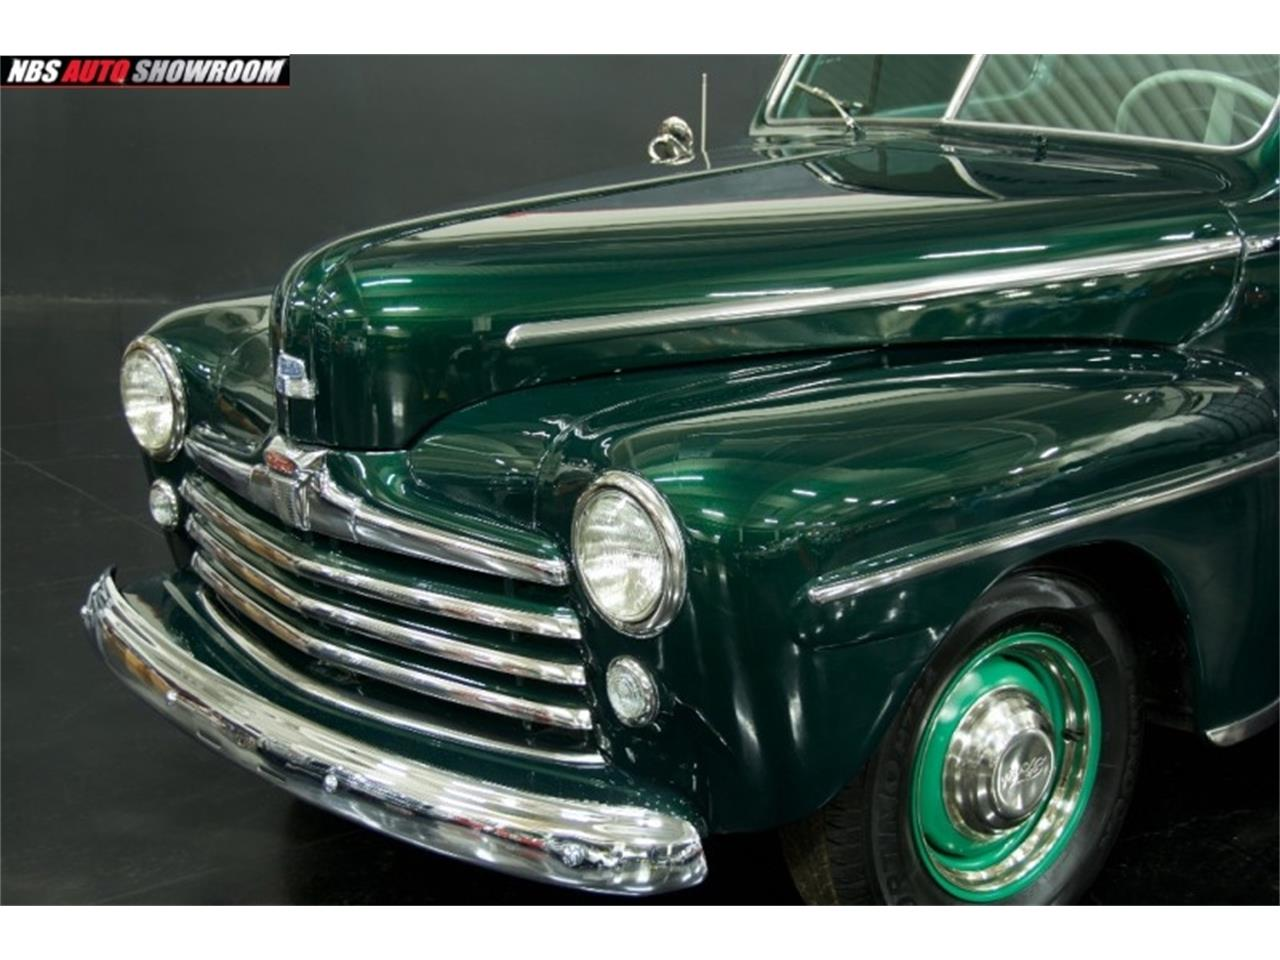 Large Picture of 1947 Ford Deluxe Offered by NBS Auto Showroom - PXT0